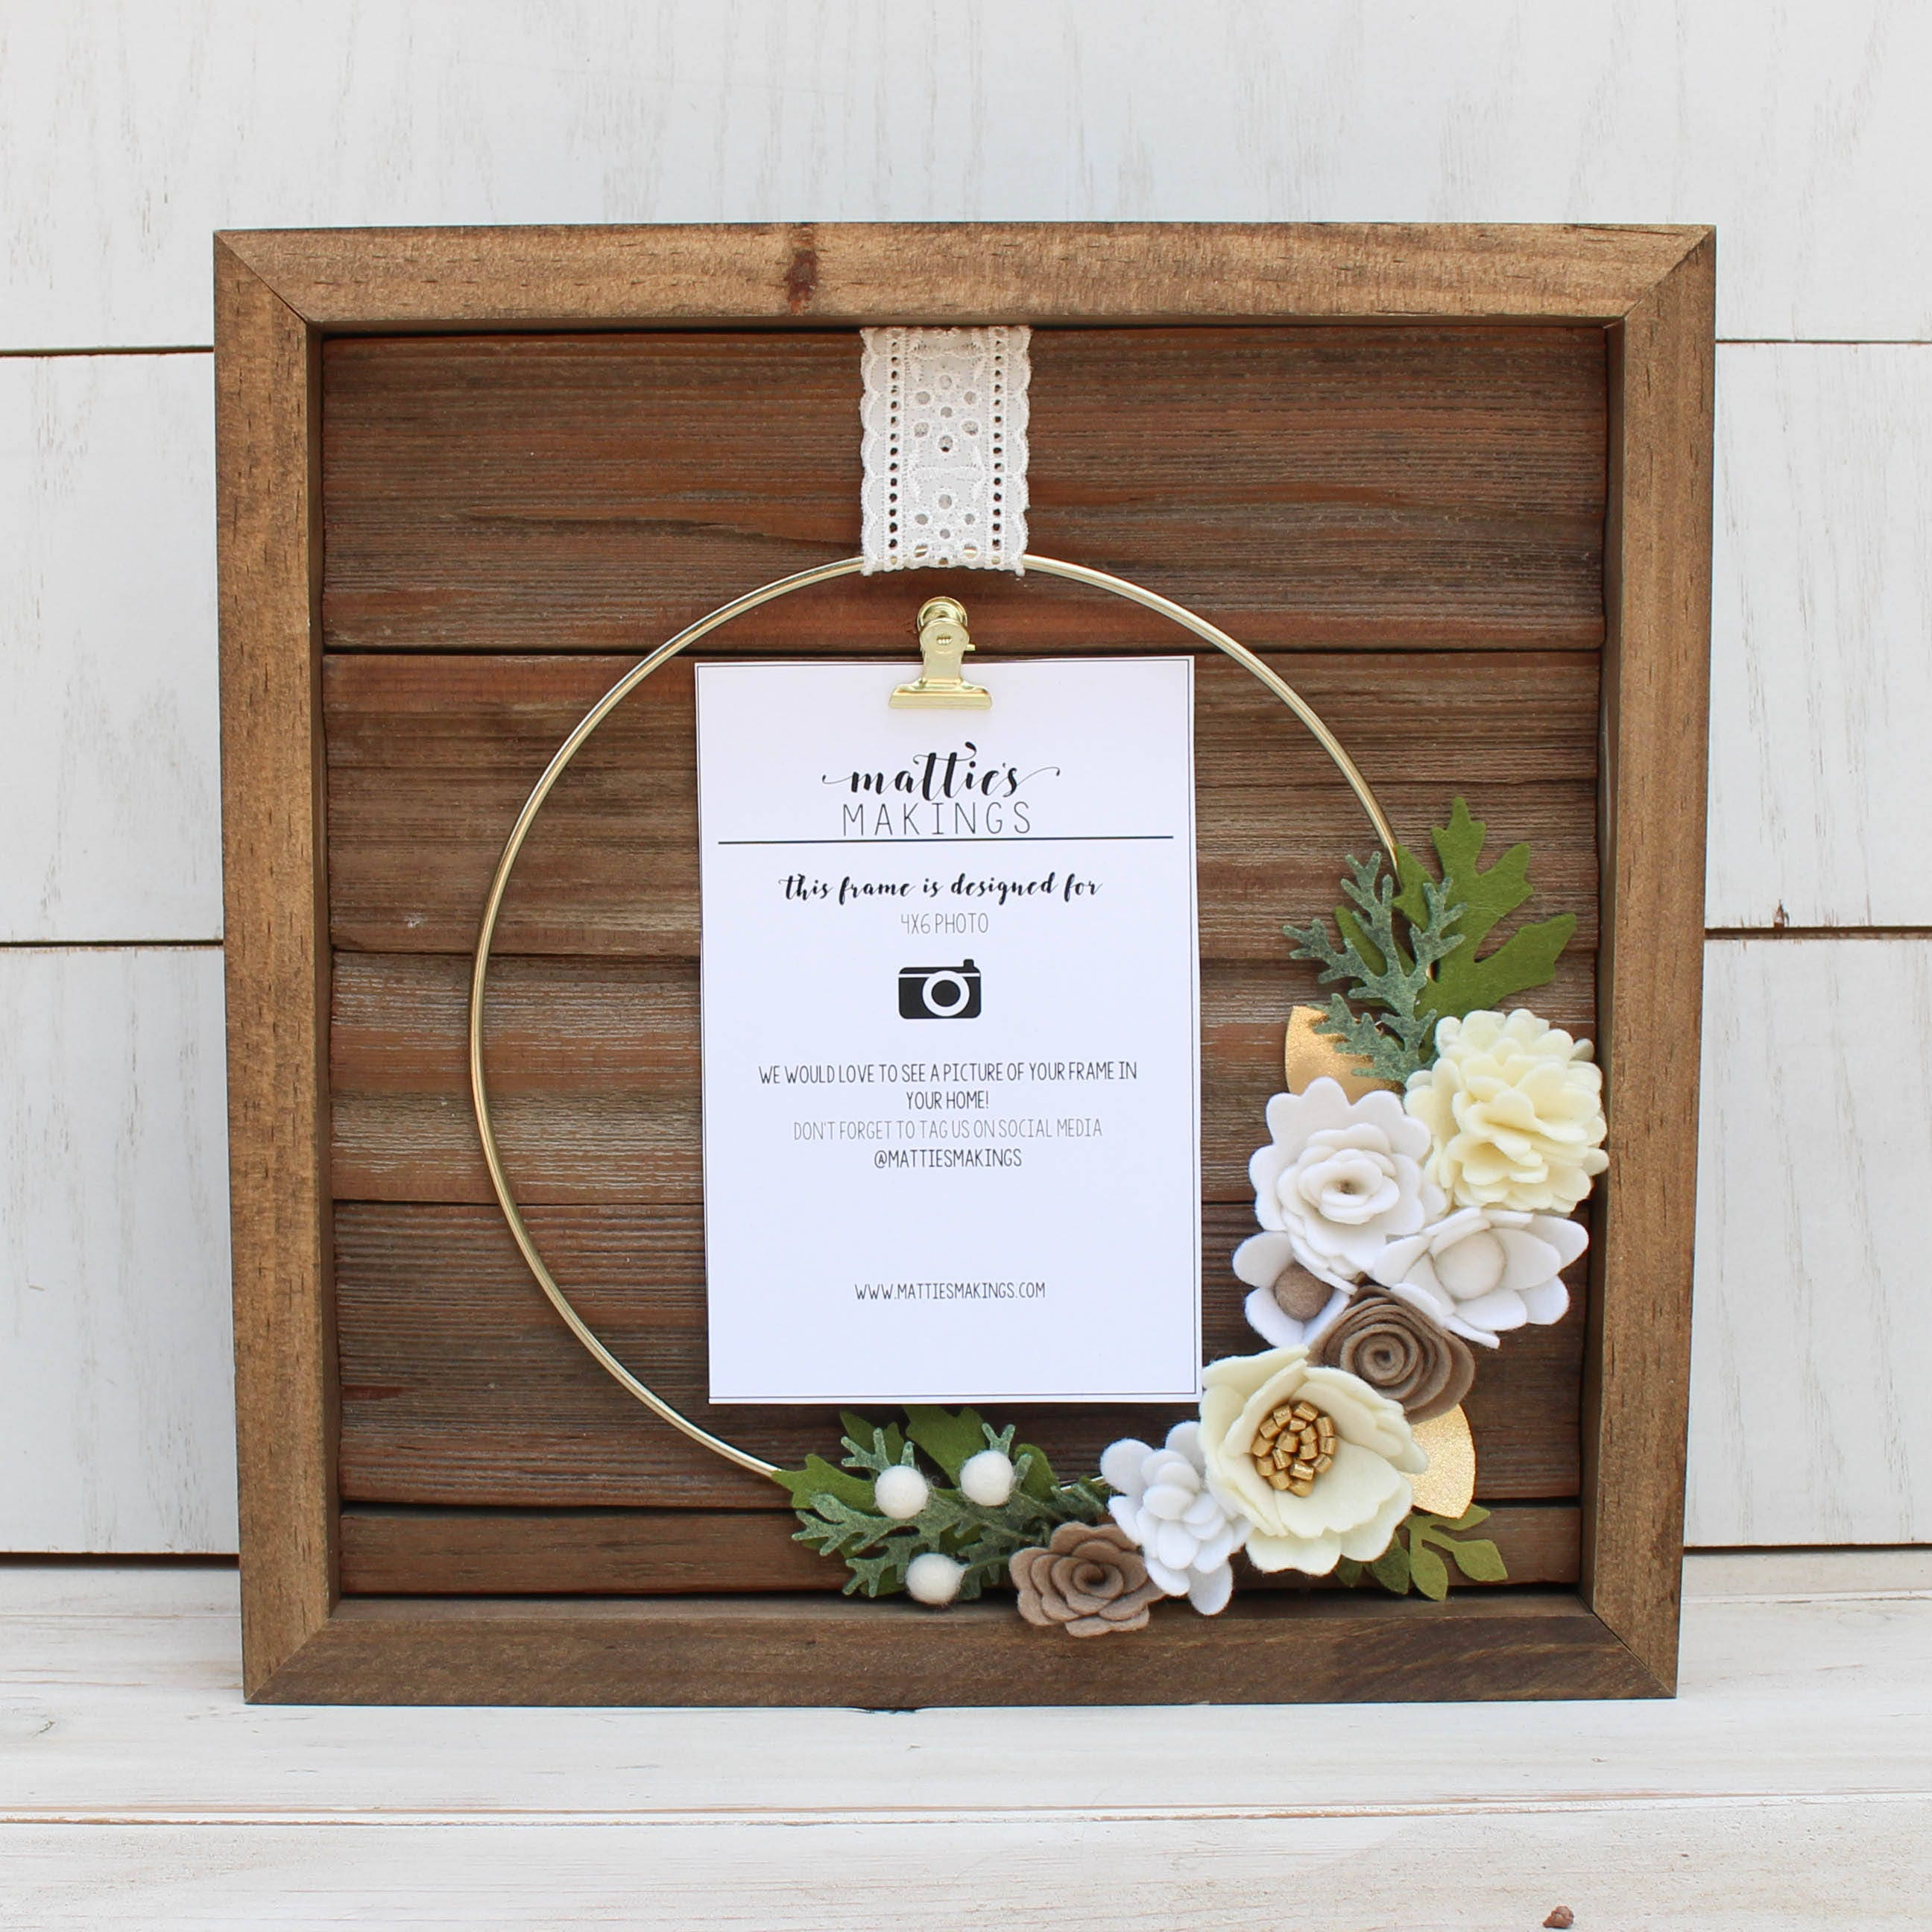 Small Ring Floral Frame 4x6 Photo 11x11 Overall